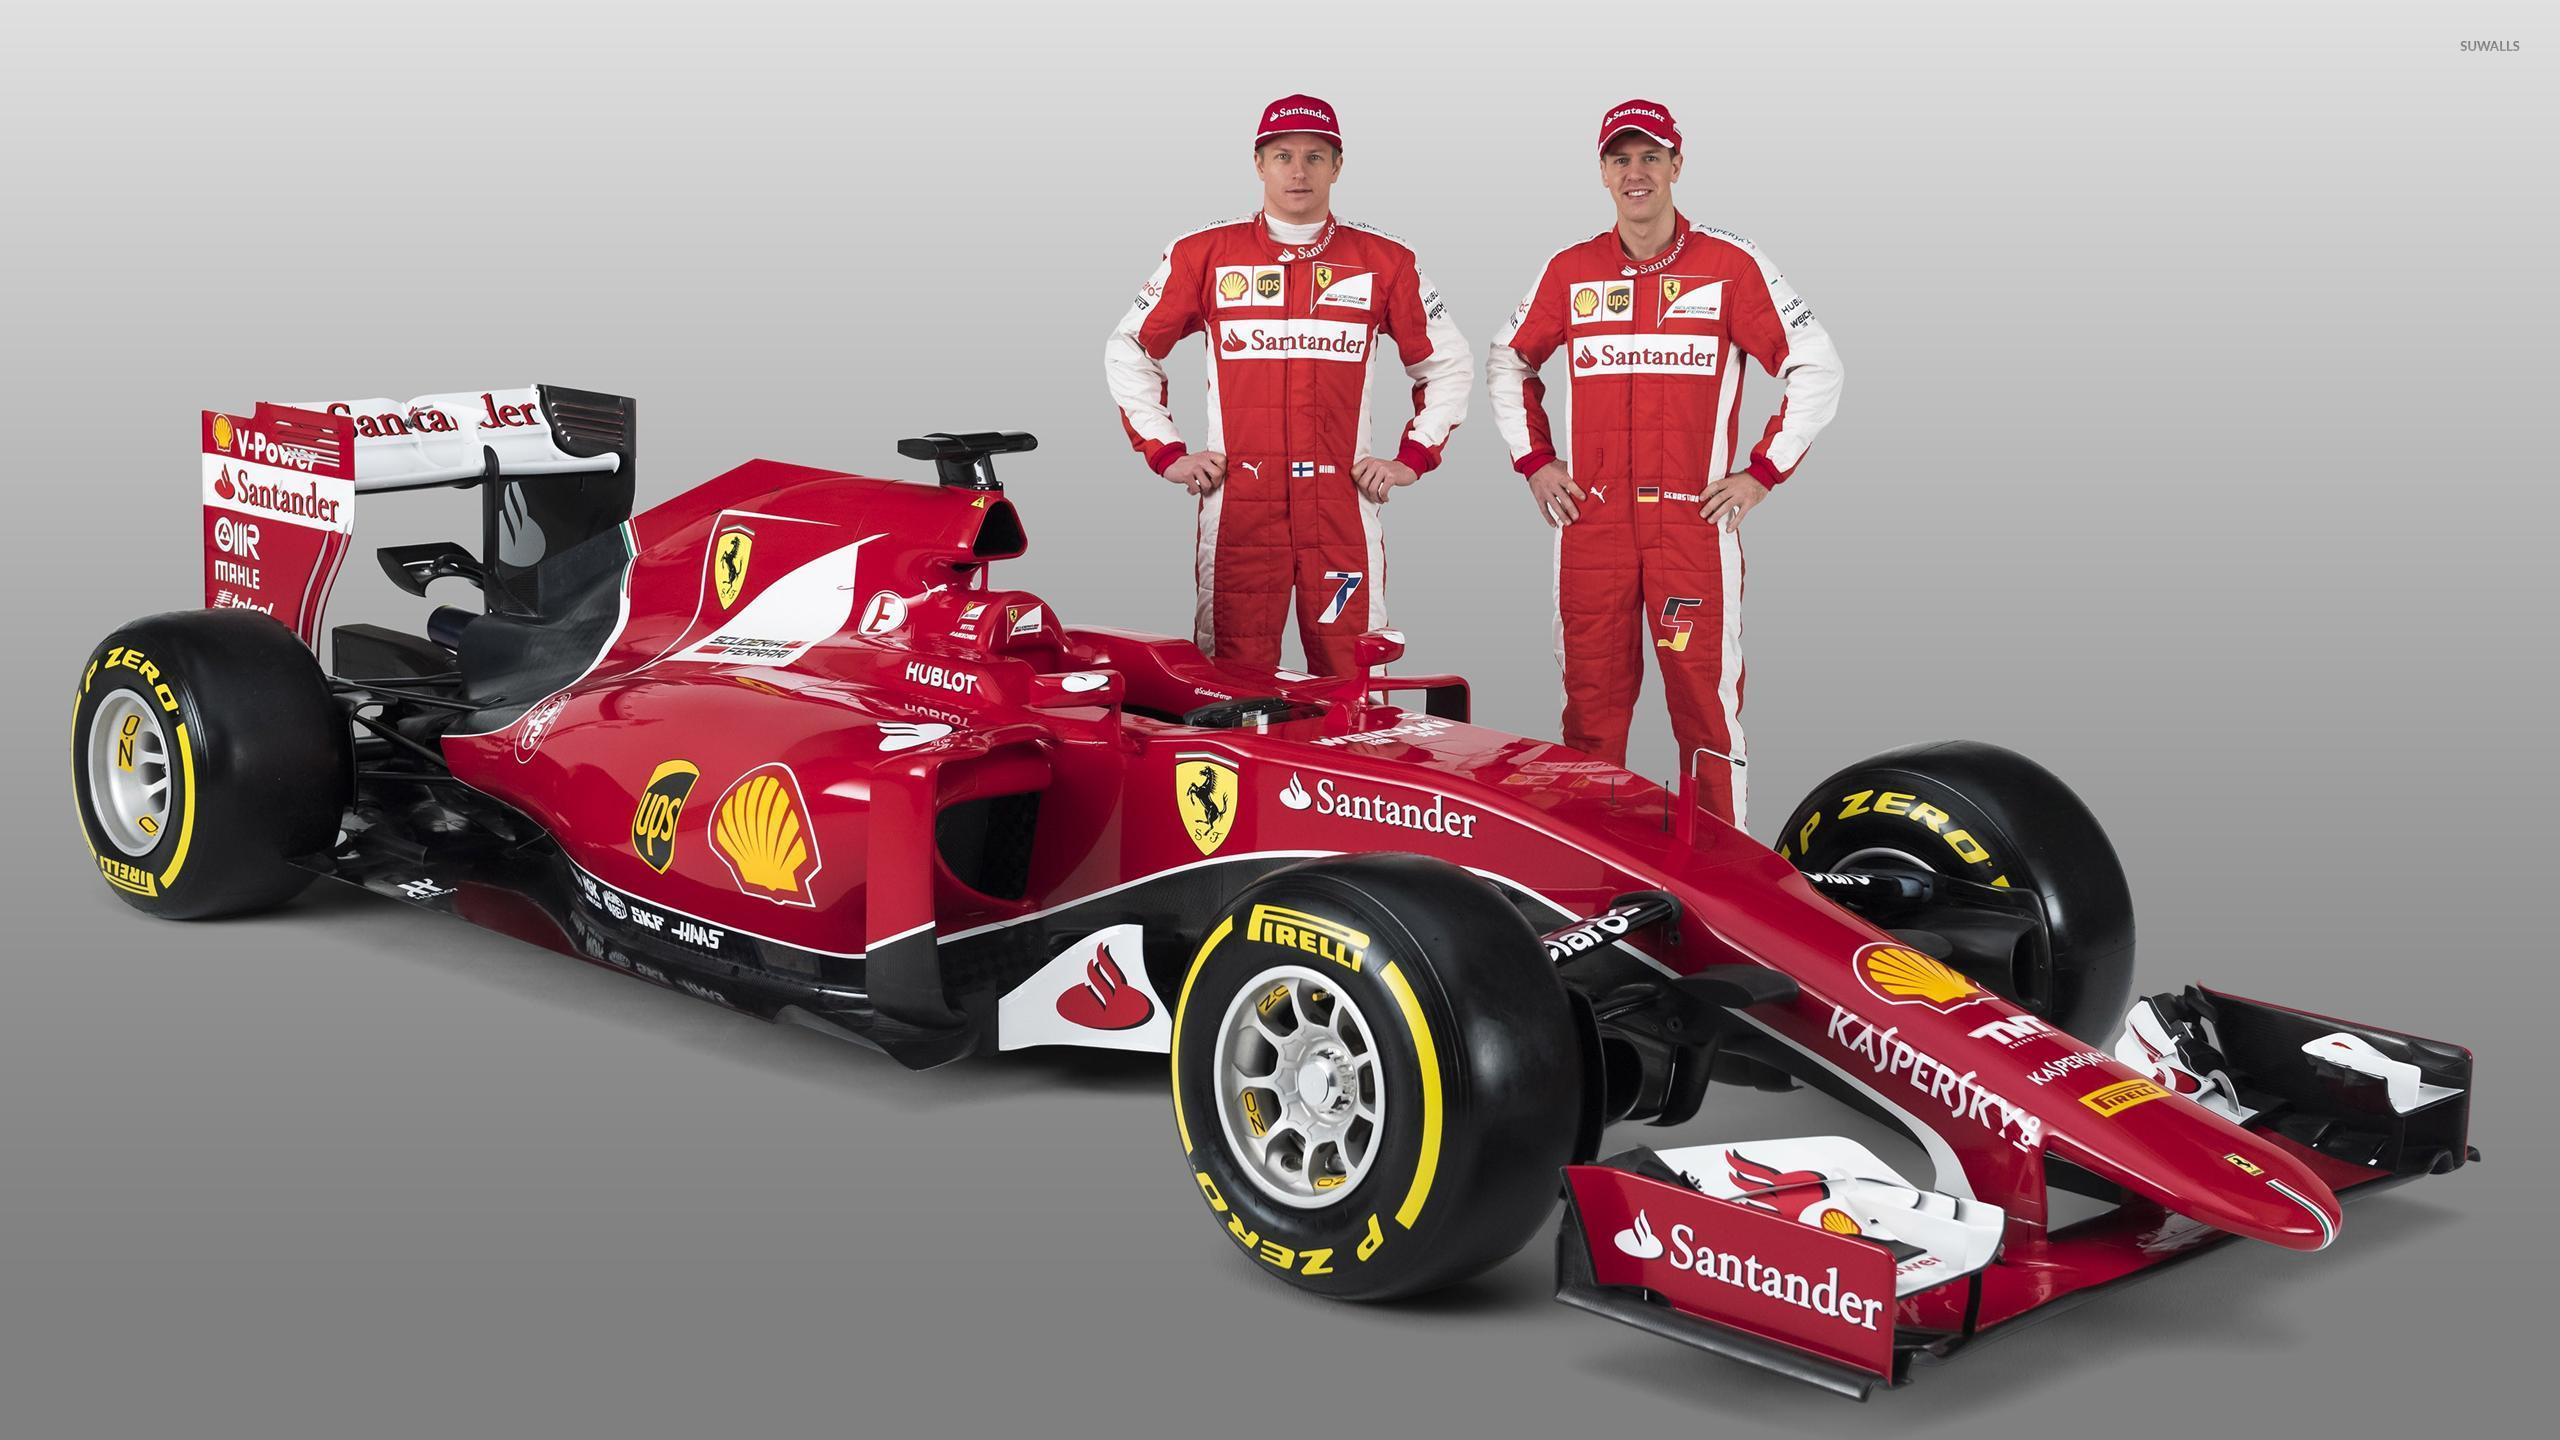 Scuderia Ferrari Wallpaper 2560x1440 Download Hd Wallpaper Wallpapertip